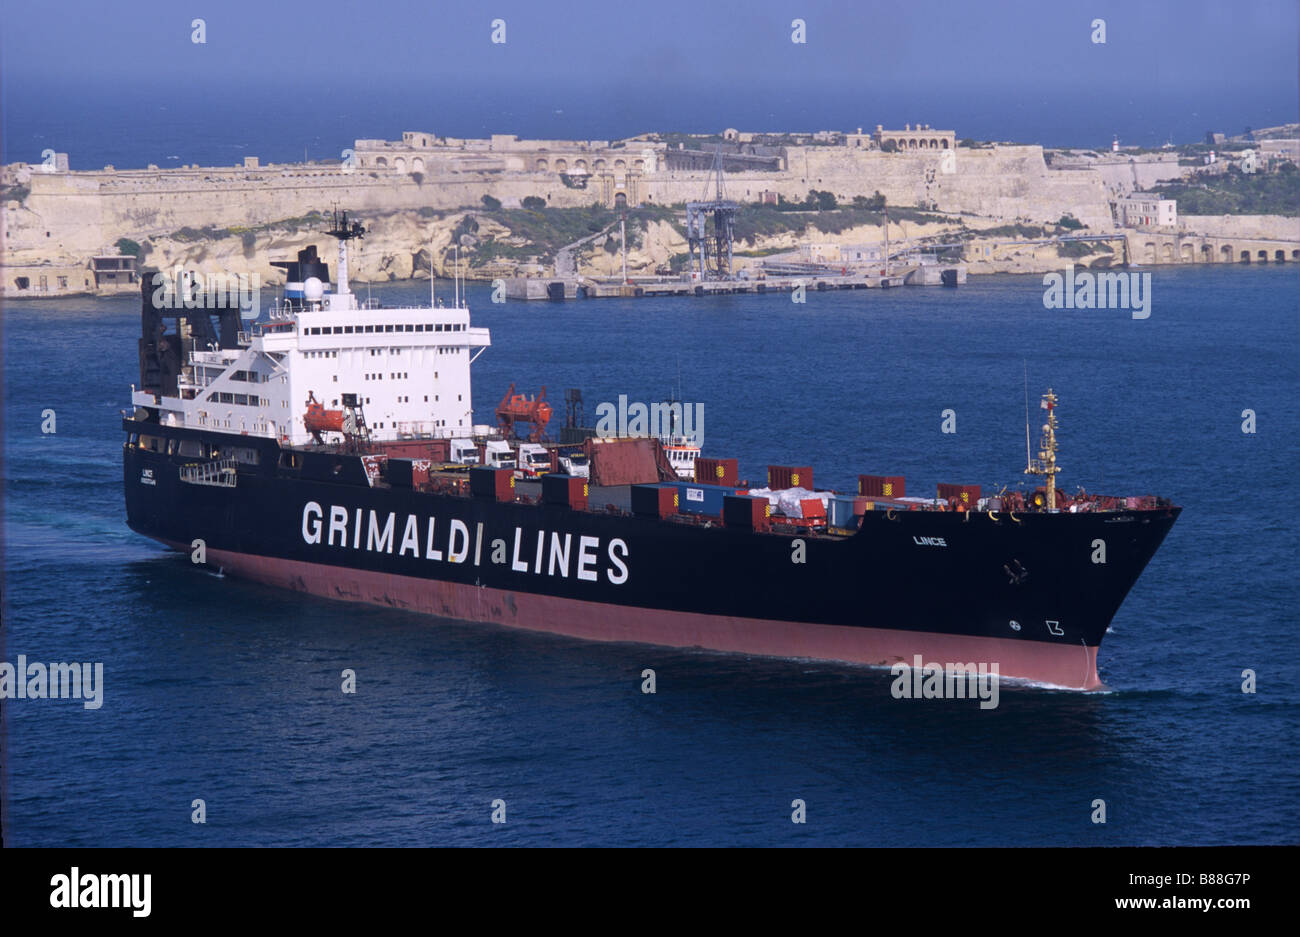 Grimaldi Lines Cargo or Container Ship in the Grand or Great Harbour or Harbor of Valletta, Malta Stock Photo